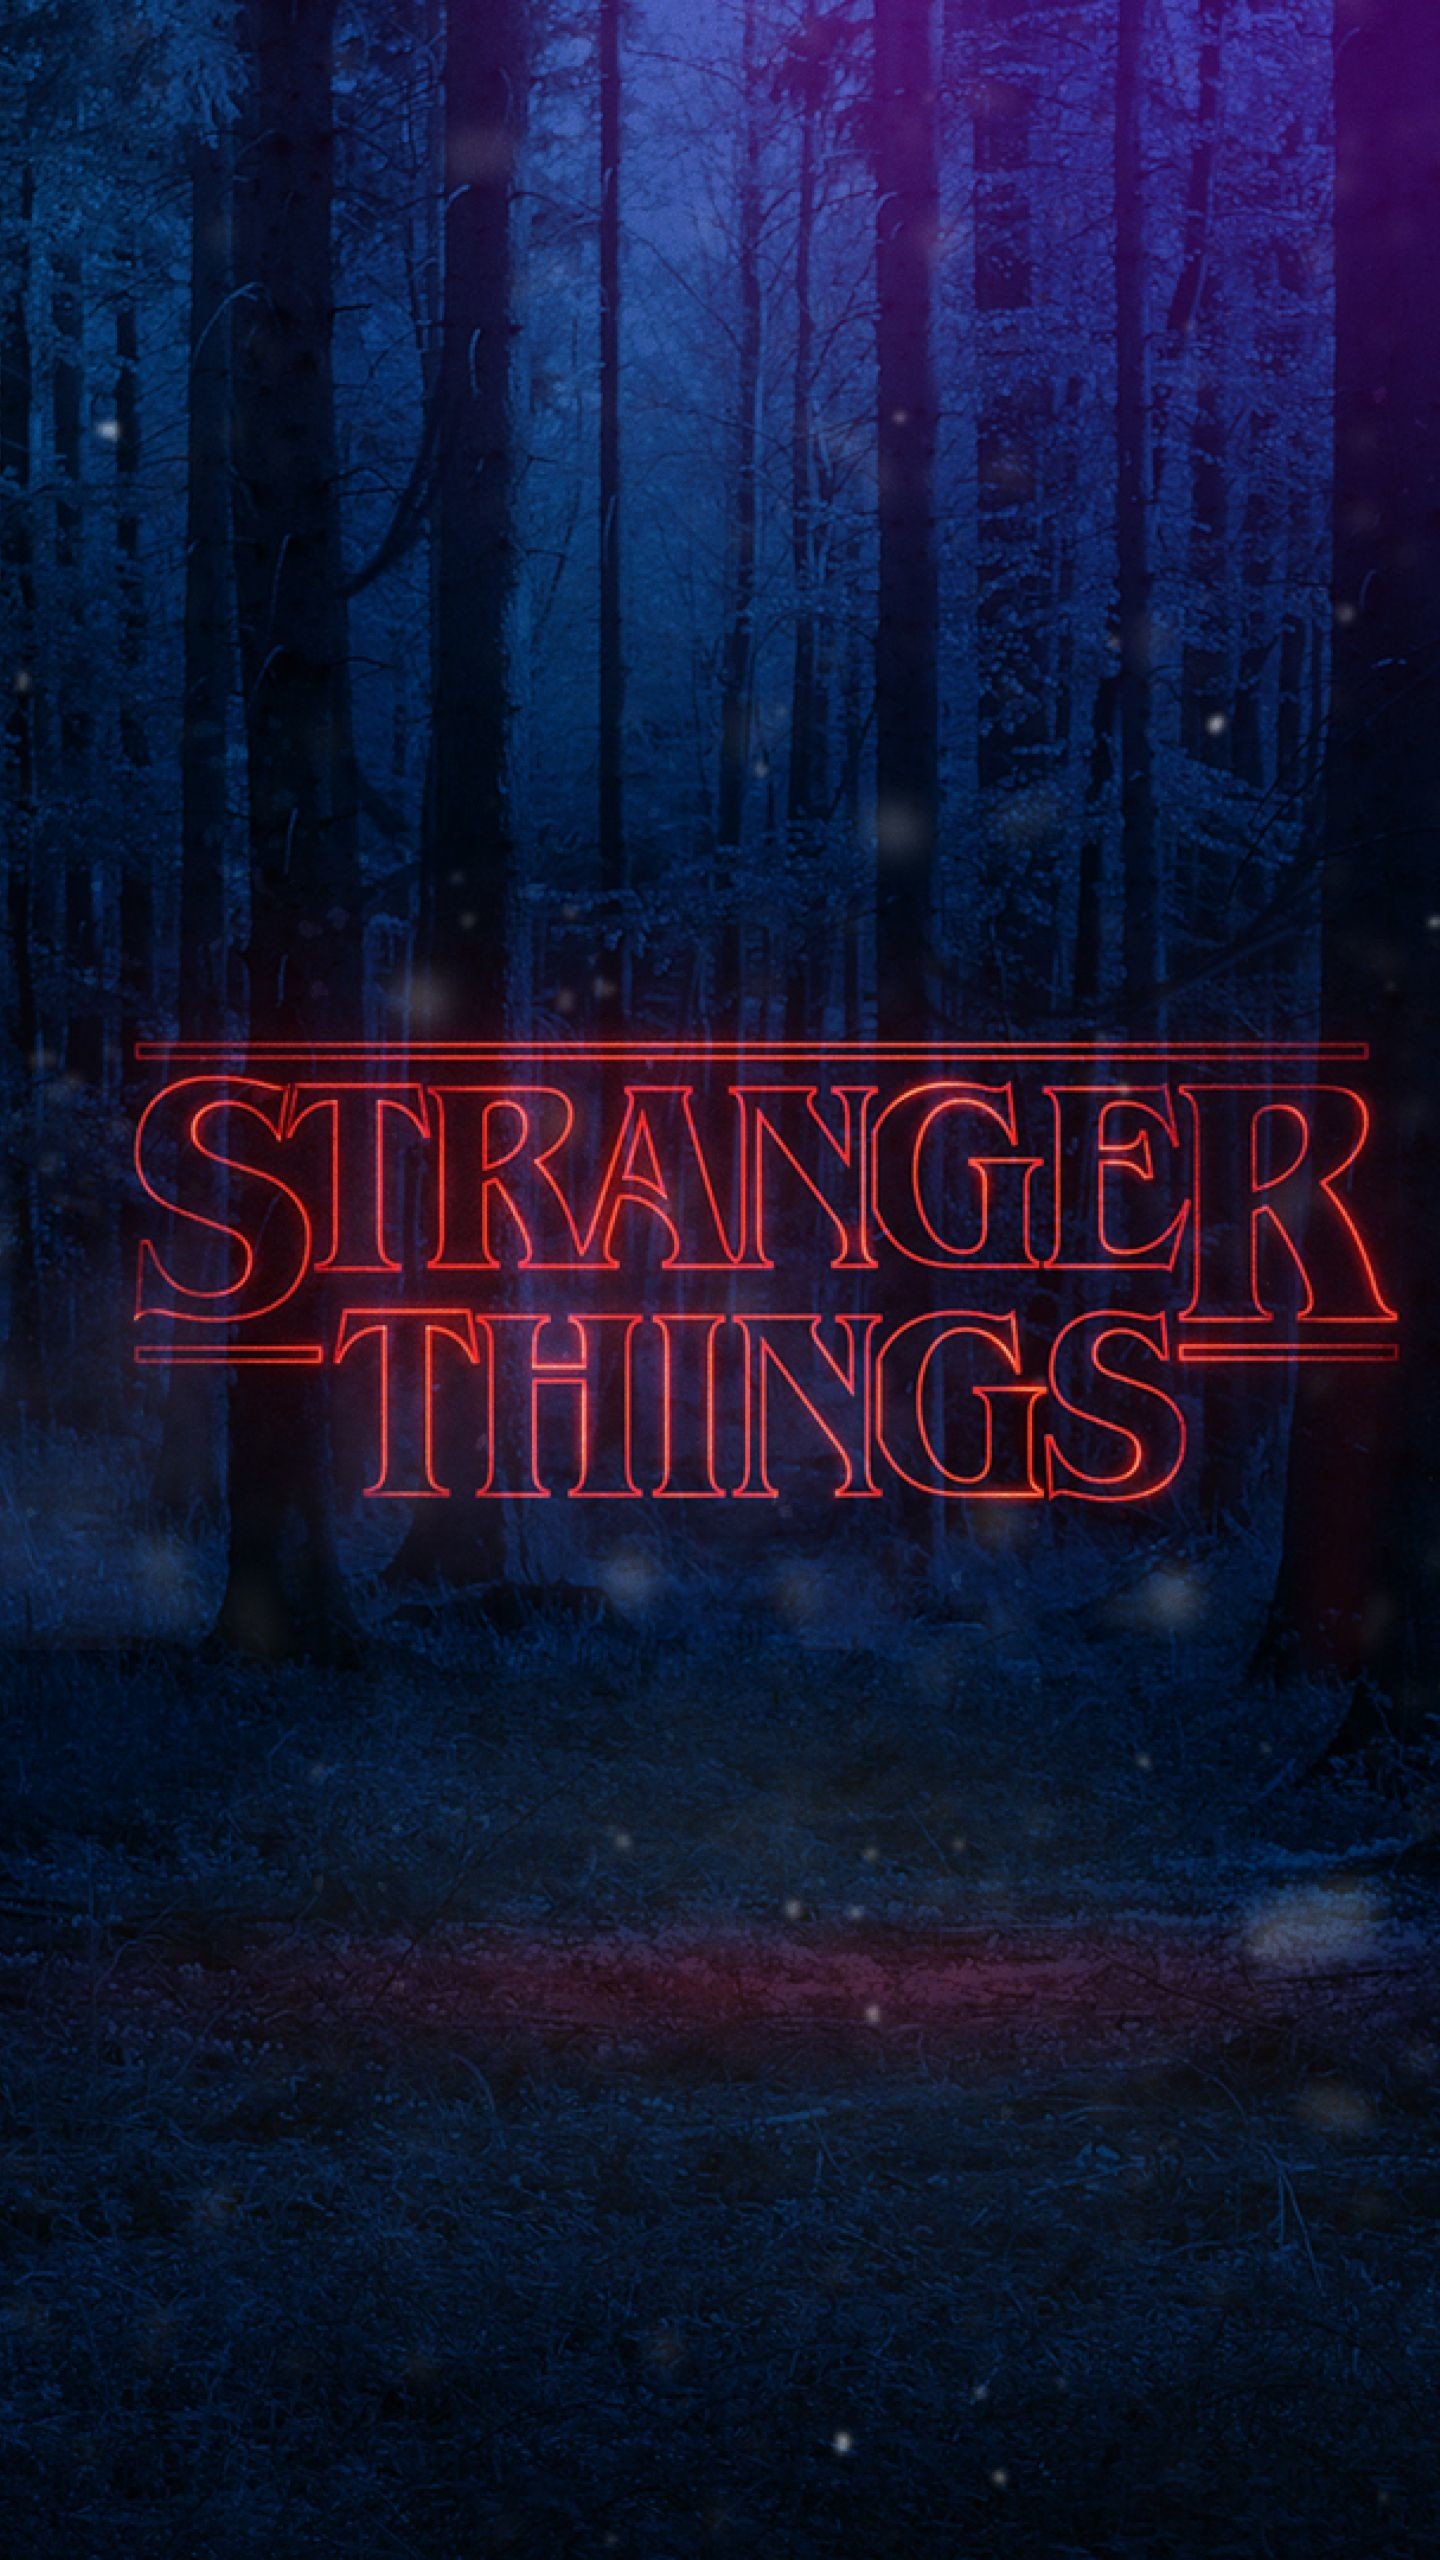 Stranger things wallpapers 73 background pictures - Stranger things desktop wallpaper ...